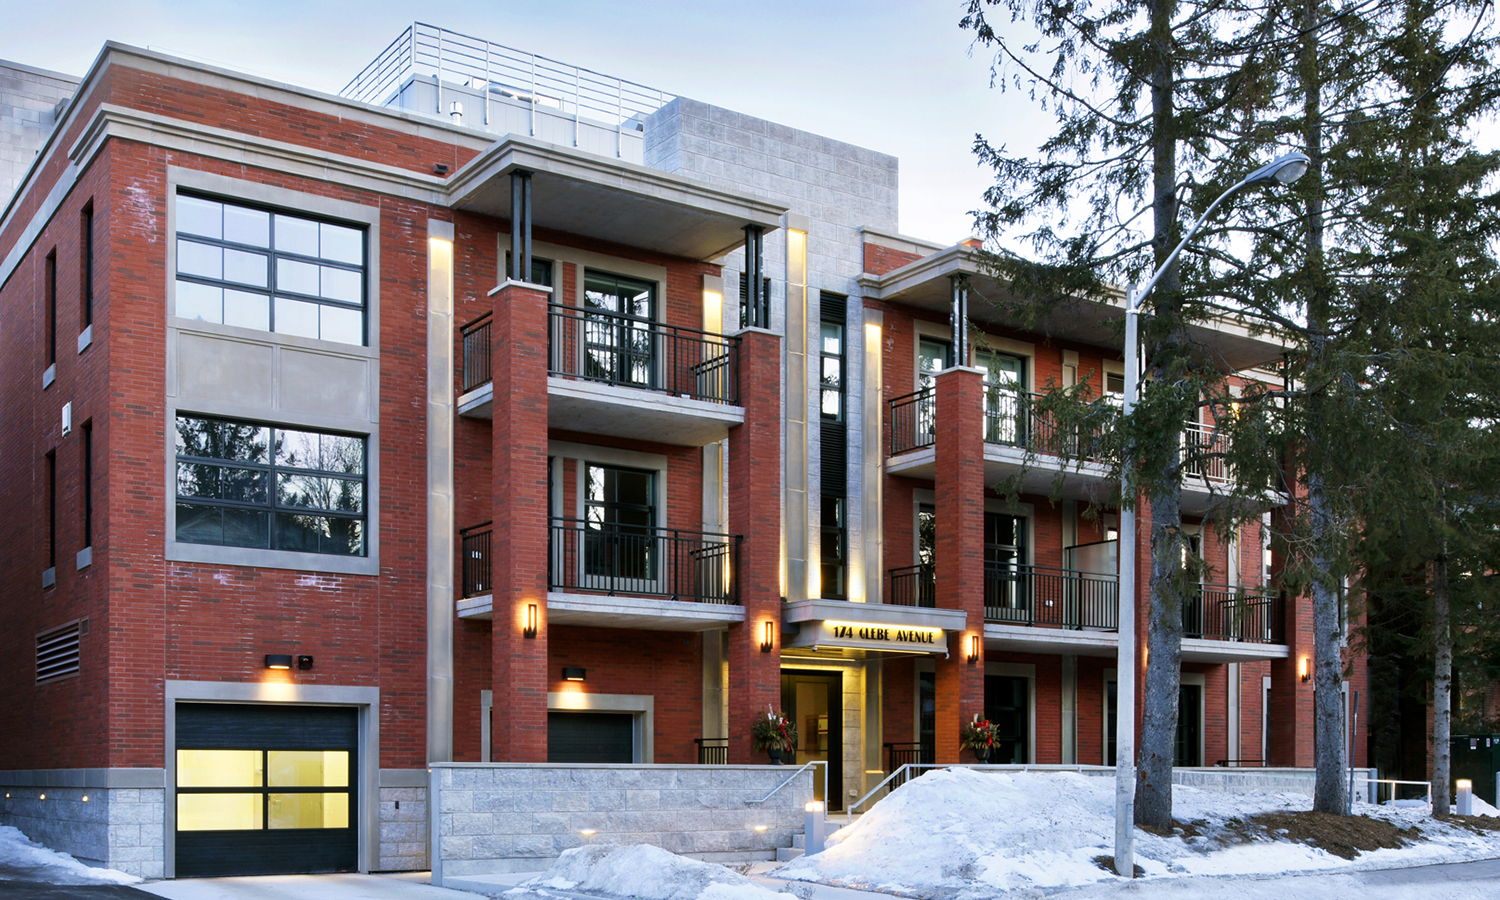 174 Glebe Avenue Luxury Condominiums